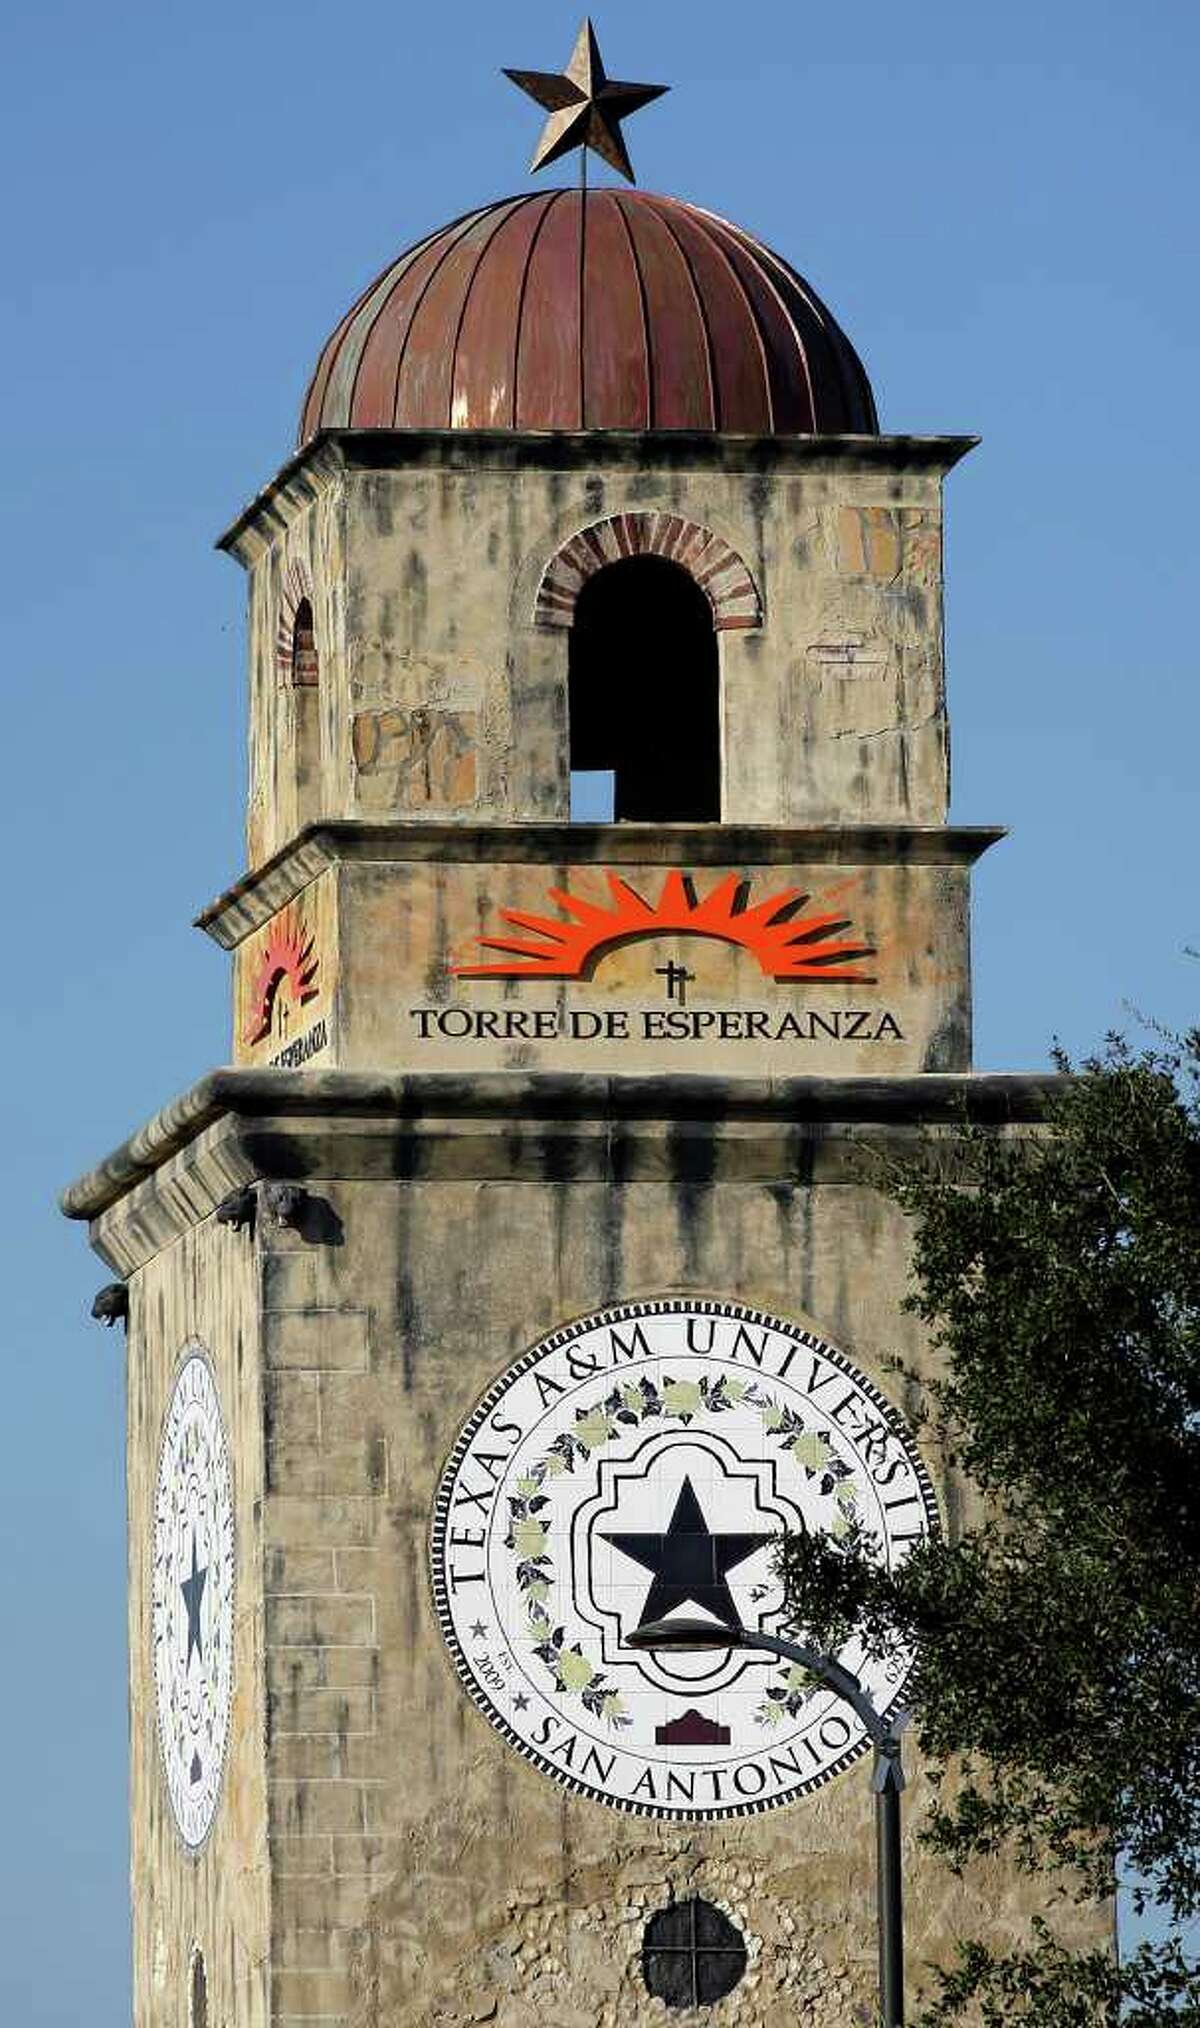 A spokeswoman for Texas A&M University-San Antonio says the crosses are meant to evoke the Spanish missions. She said the university had an opportunity to review the design.